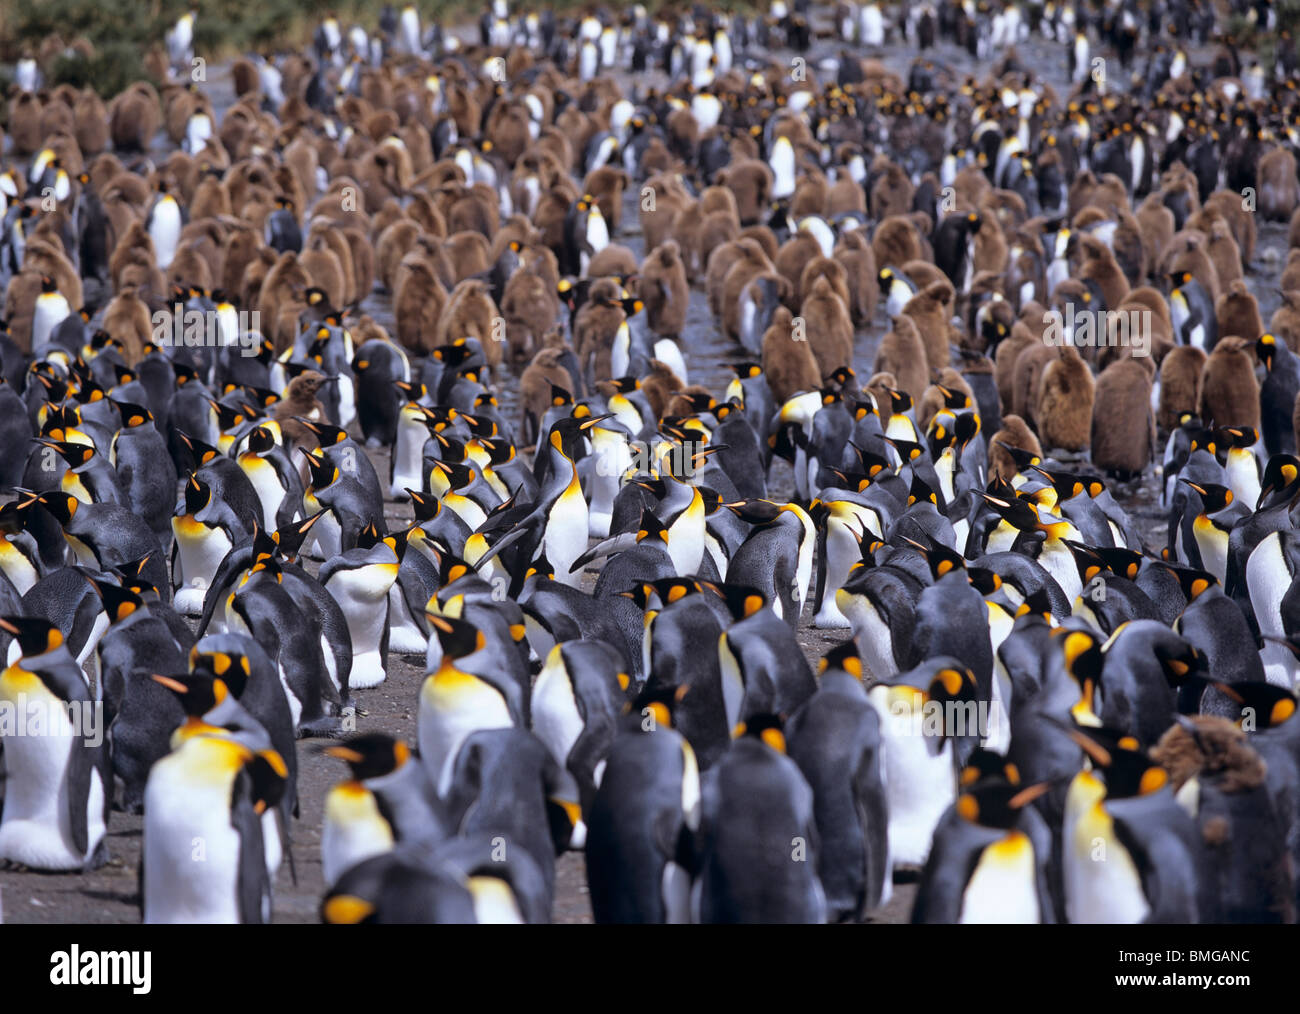 Colony of King penguins Aptenodytes patagonicus in Gold Harbour South Georgia Island, Antarctica - Stock Image